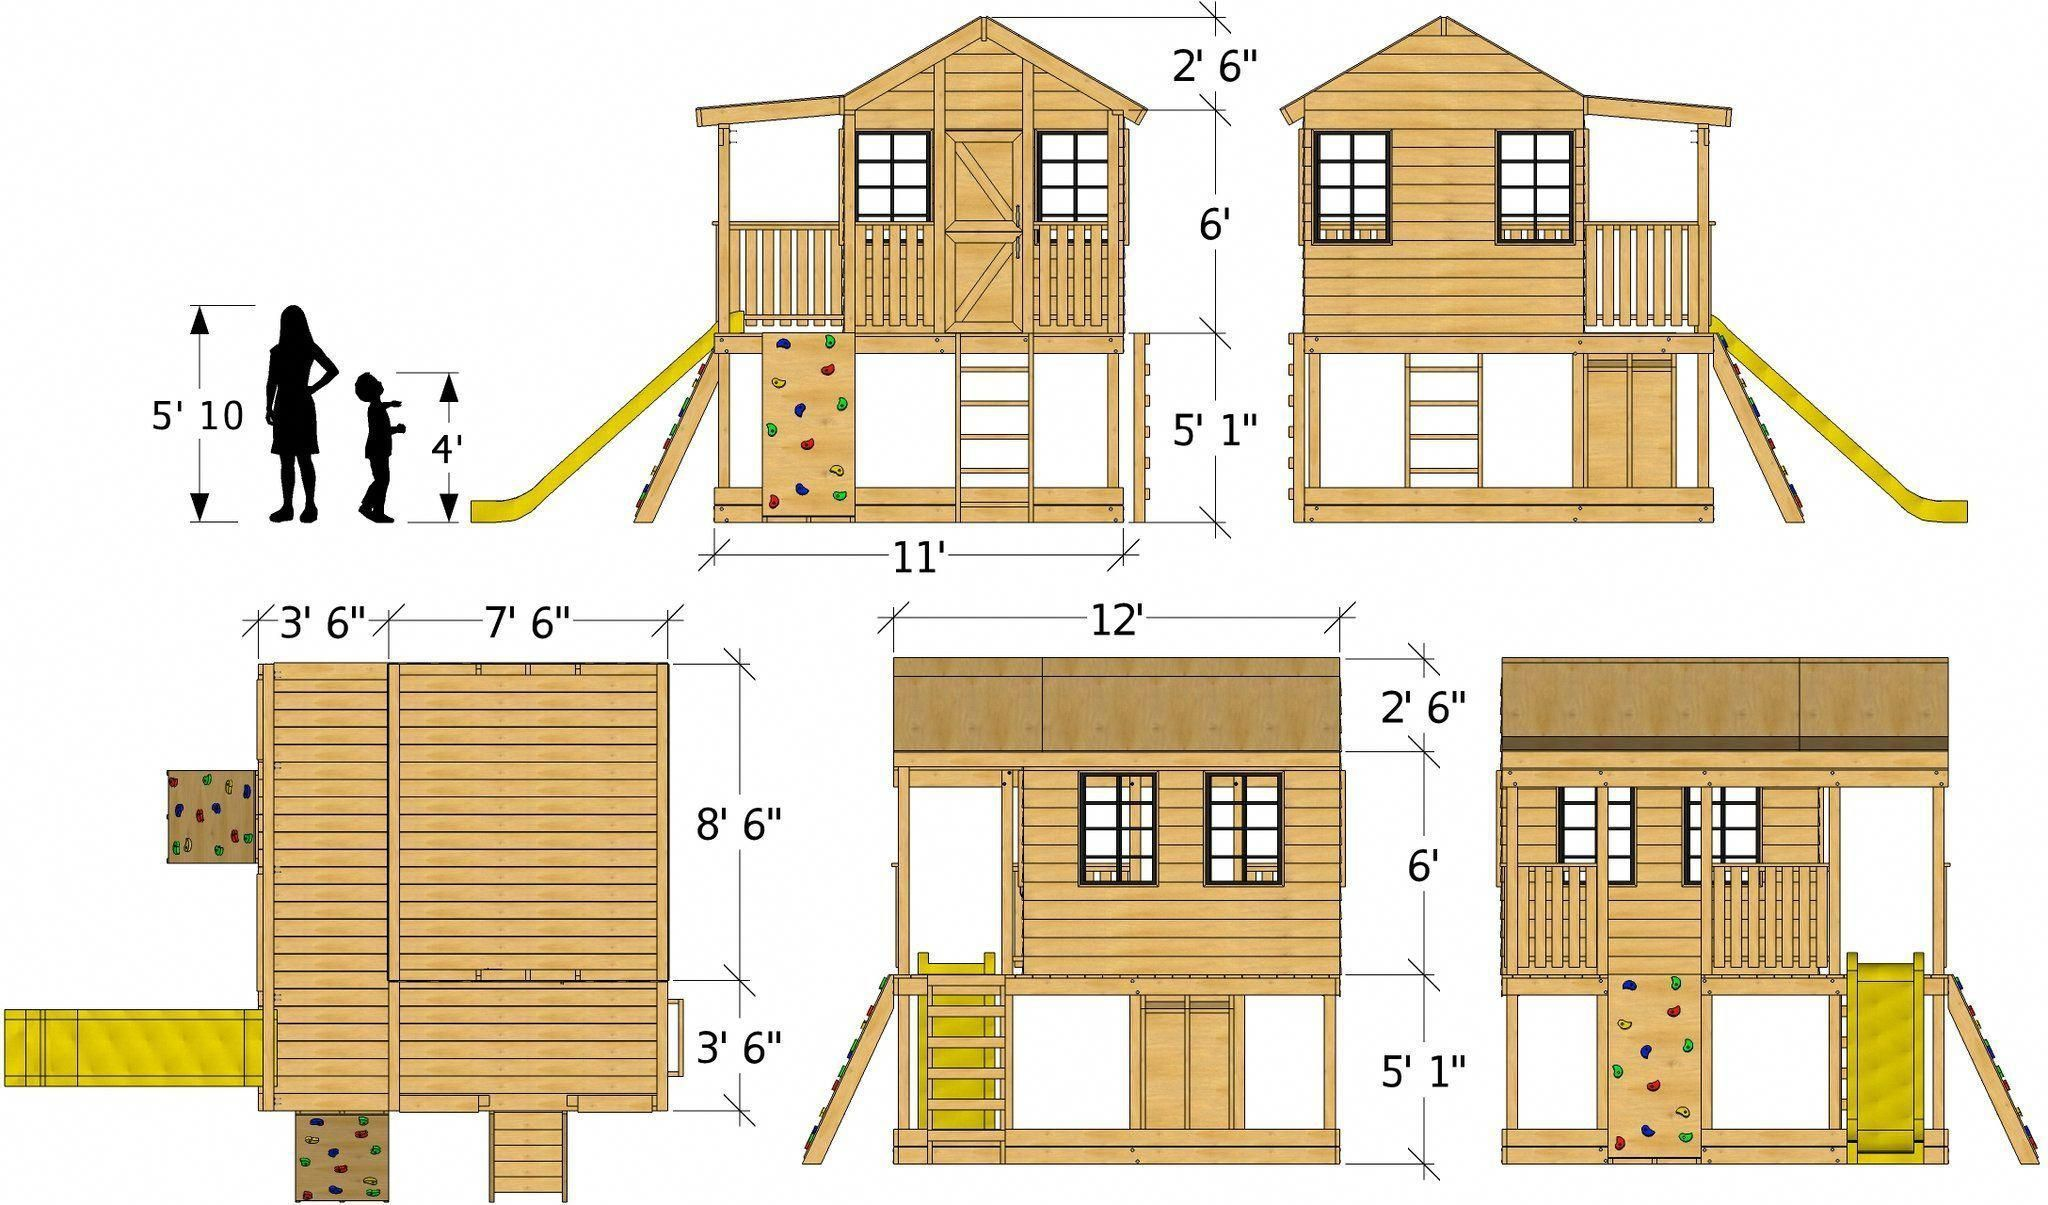 Make your own house plans online for free  Elevated playhouse plan dimensions buildaplayhouse